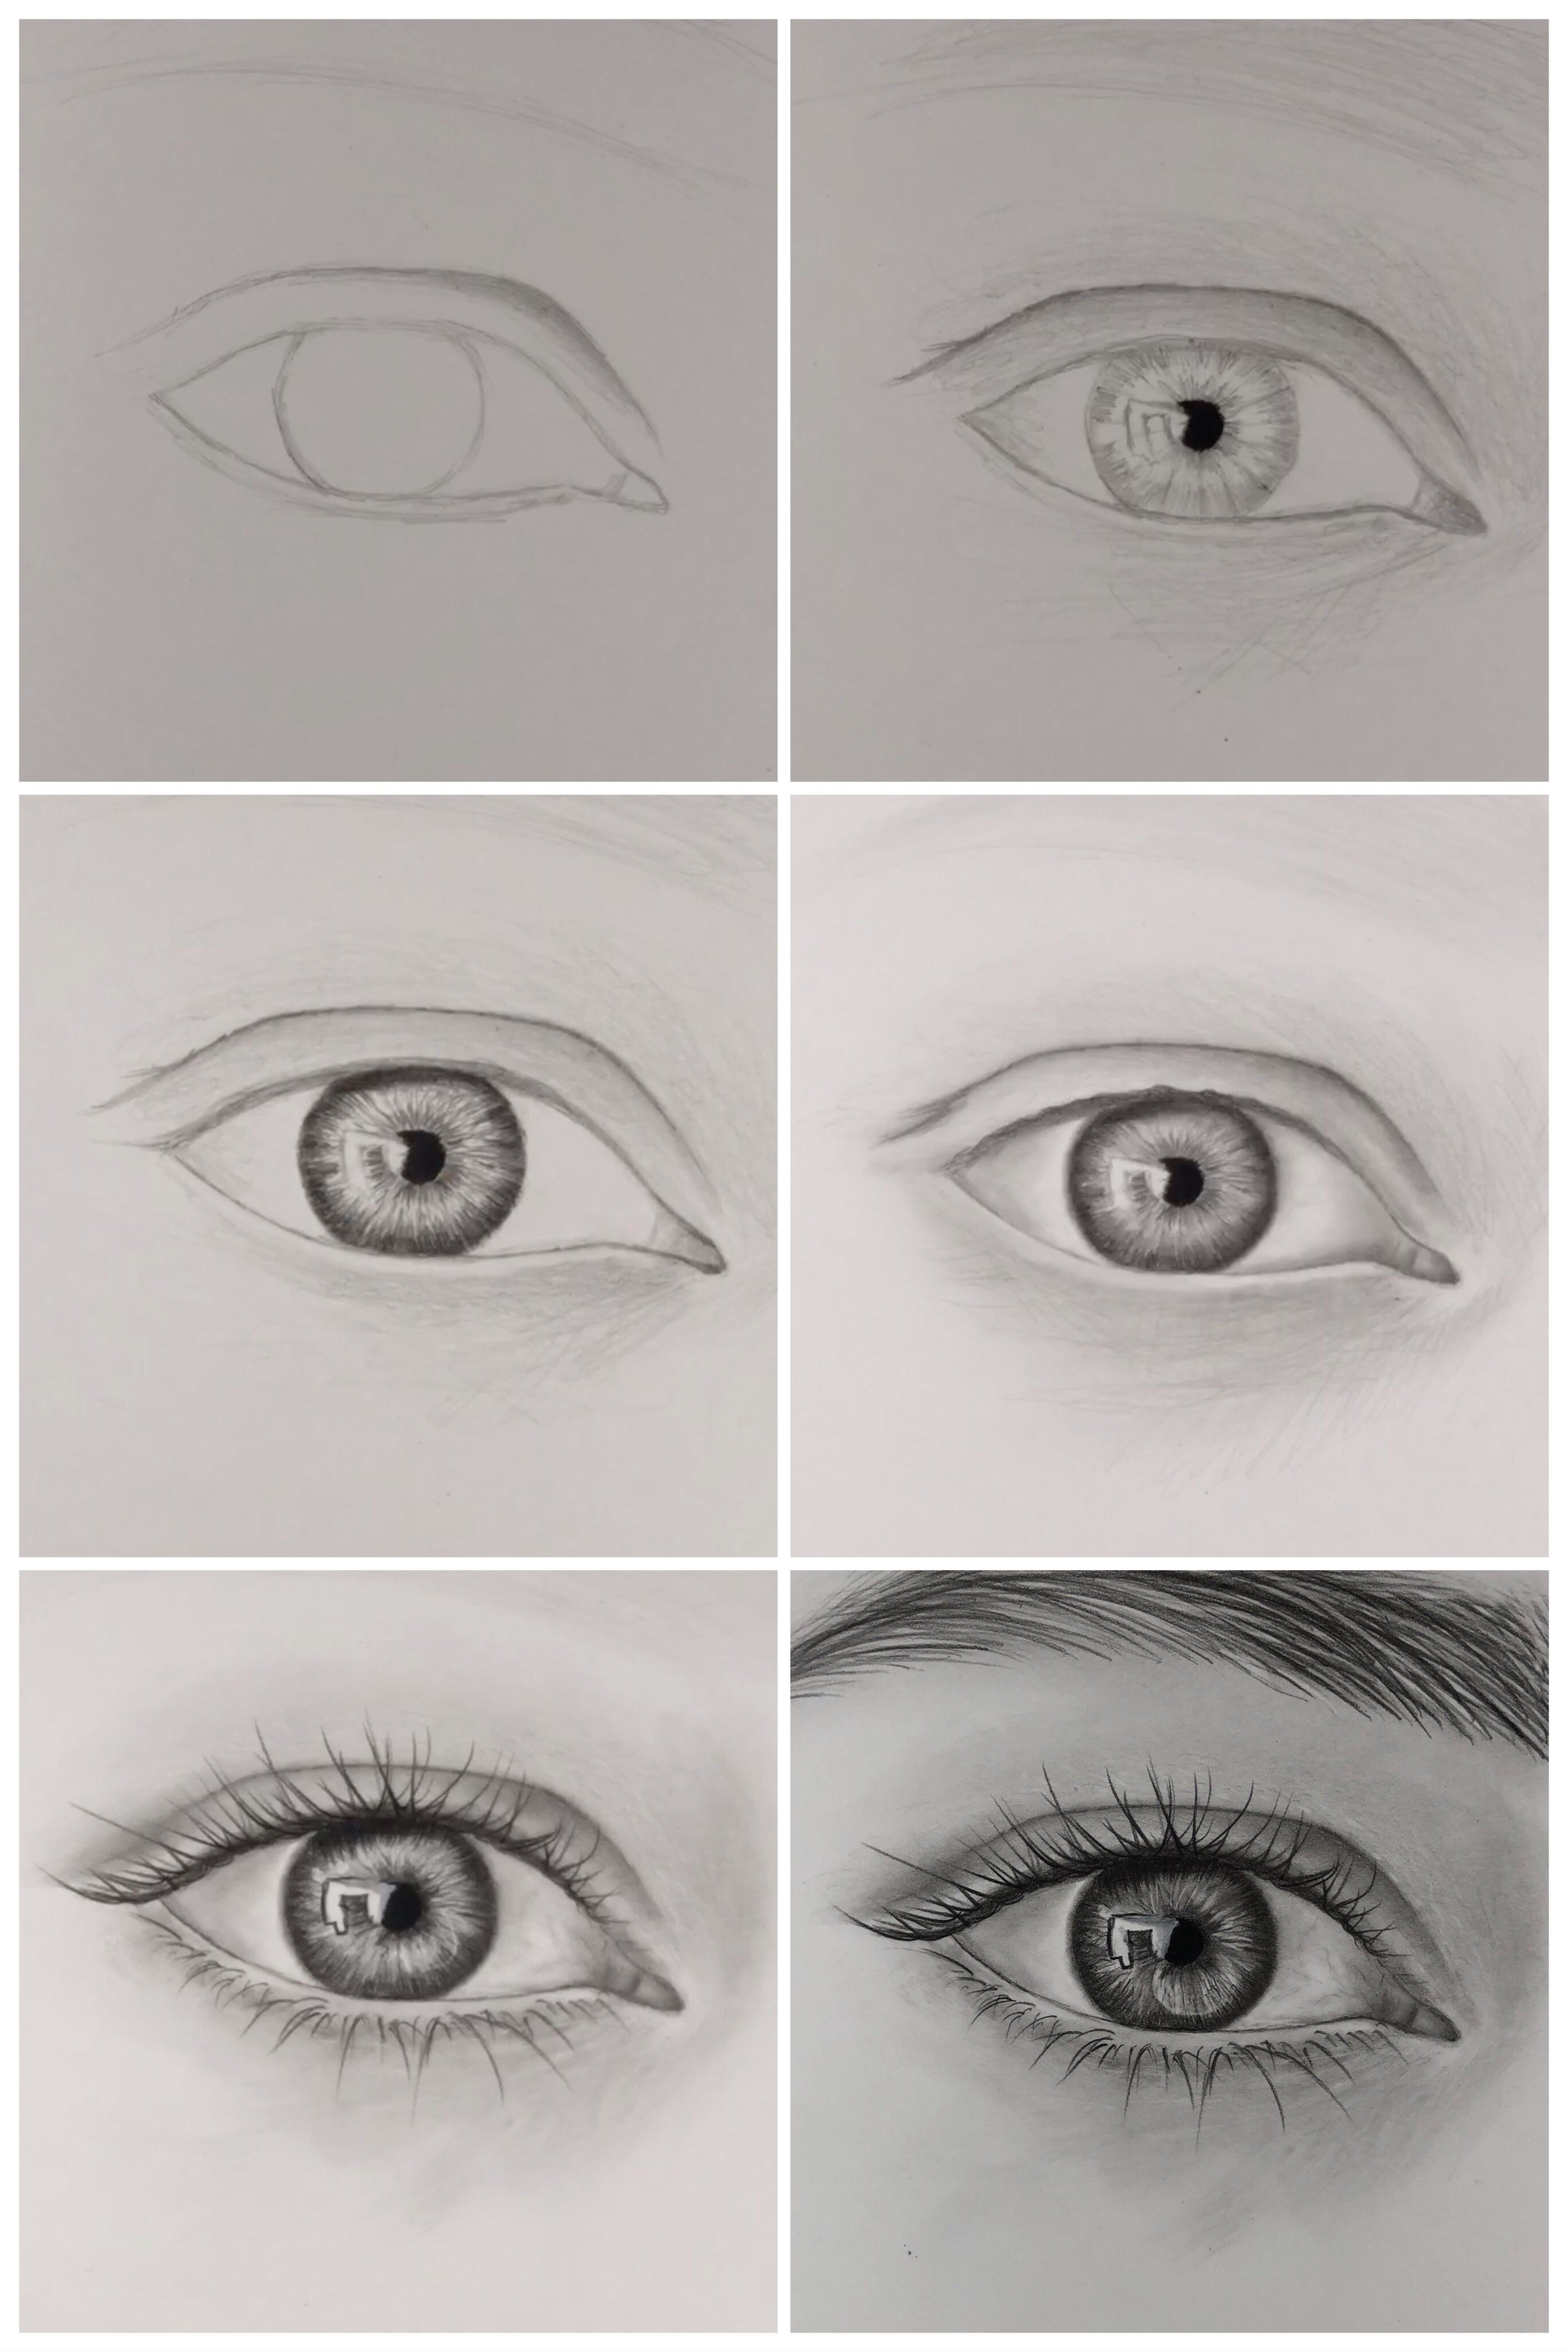 How To Draw Realistic Eye Step By Step Youtube Realistic Drawings Eye Drawing Tutorials Art Drawings Sketches